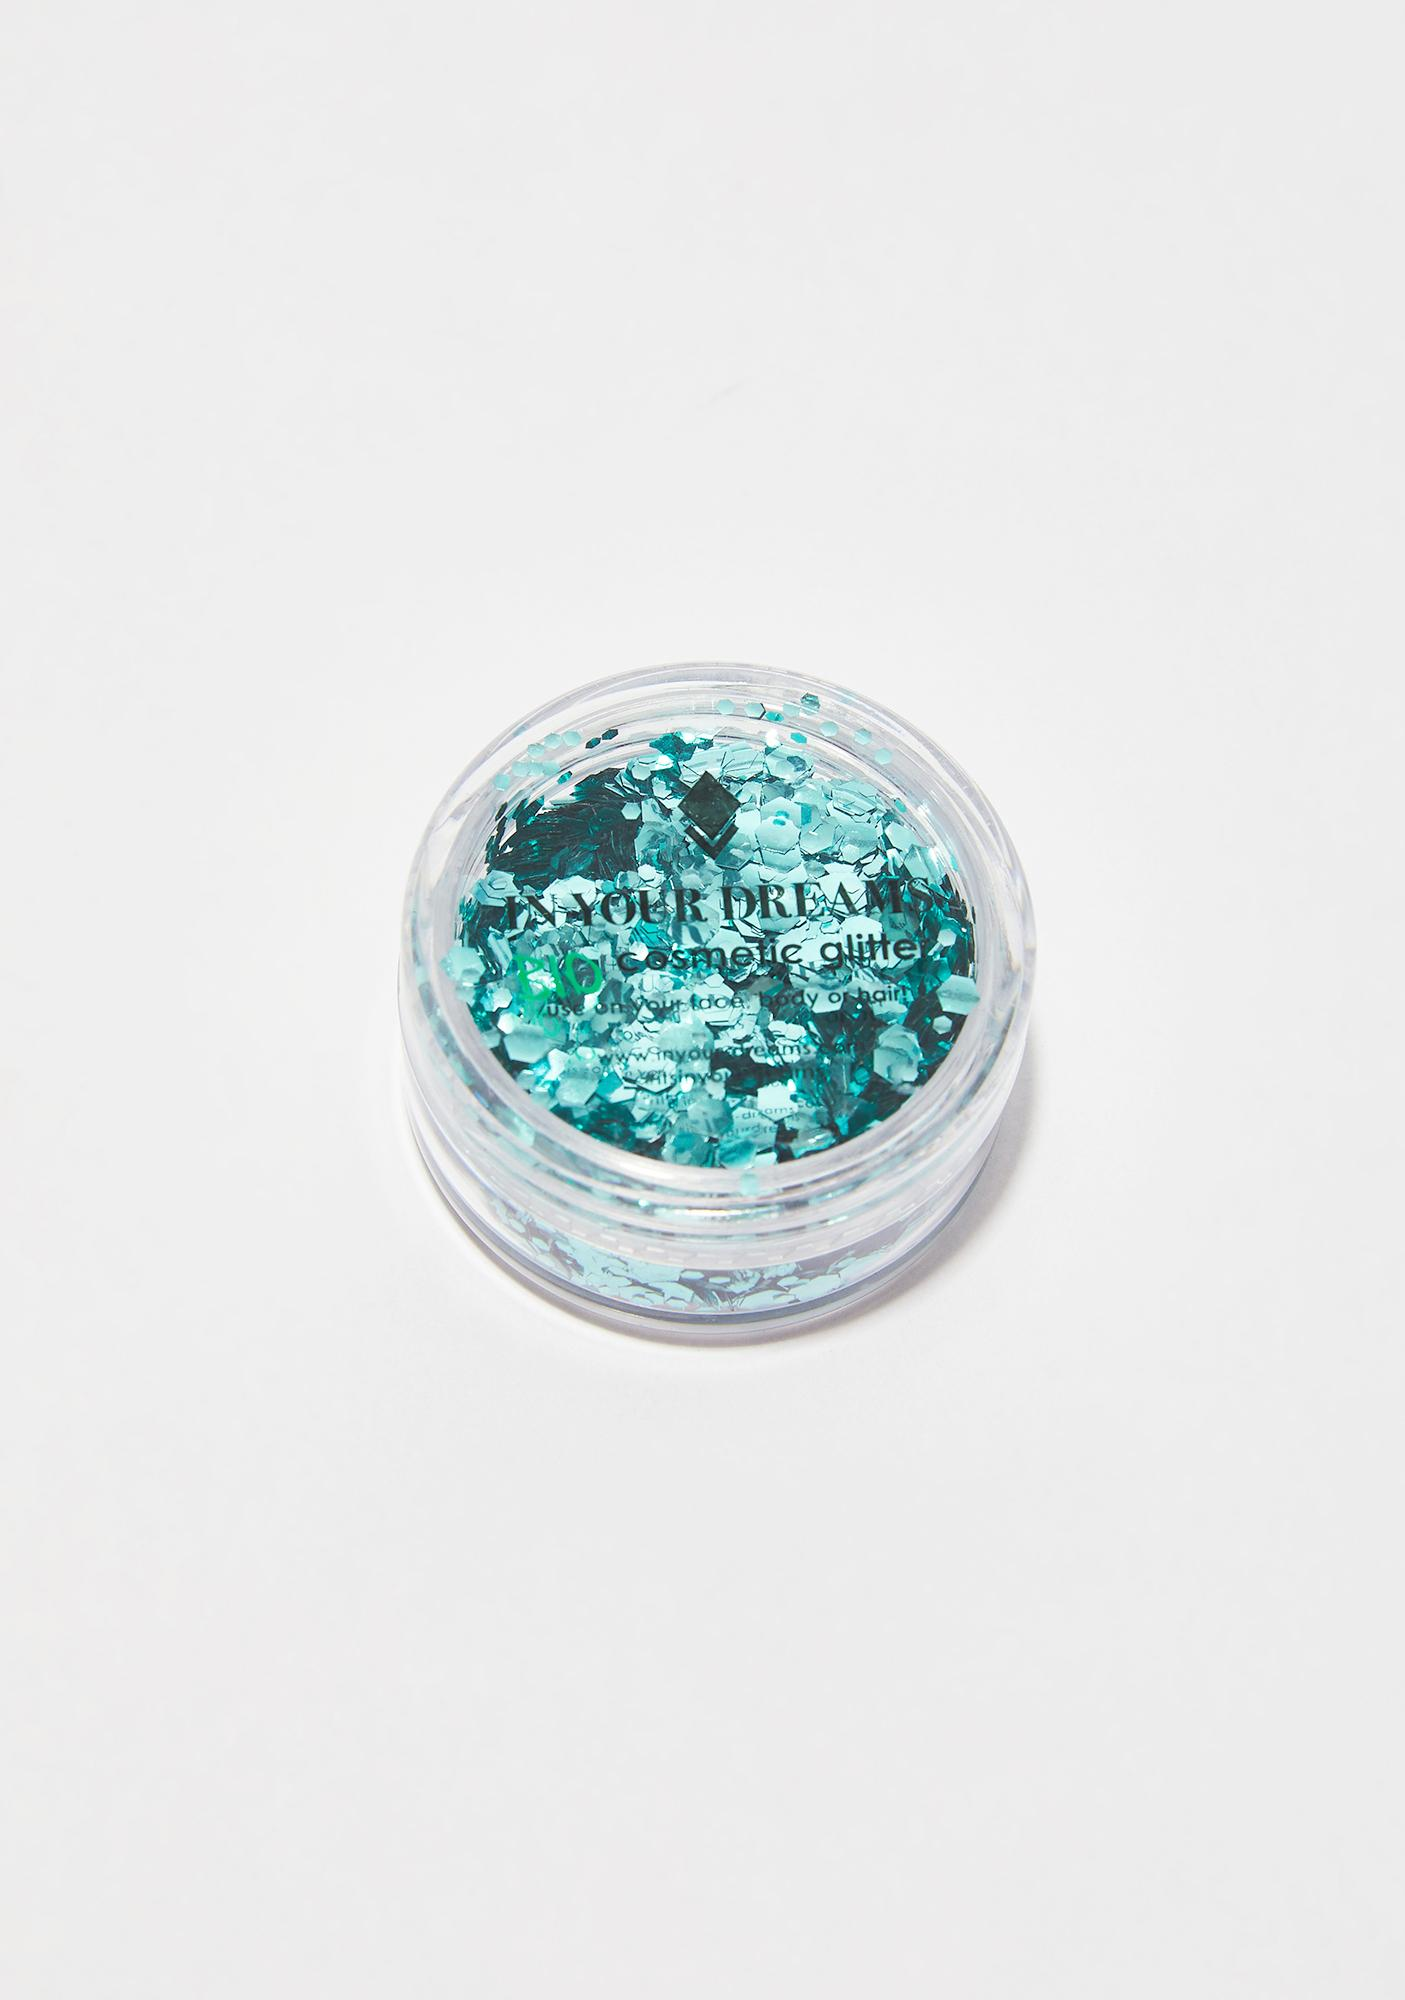 In Your Dreams Aqua Trip Bio Chunky Glitter